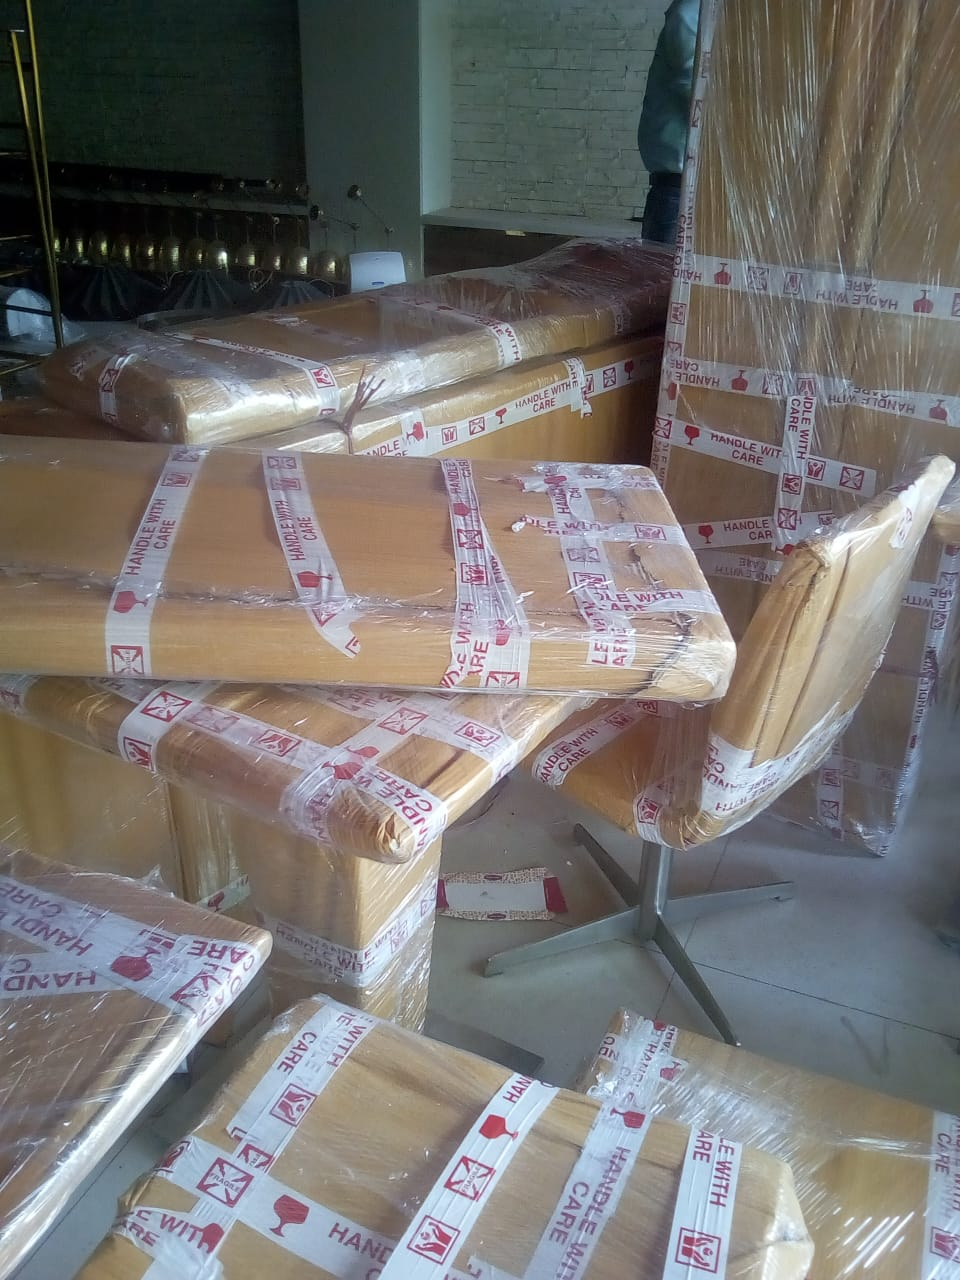 Packers and movers in Nebsarai